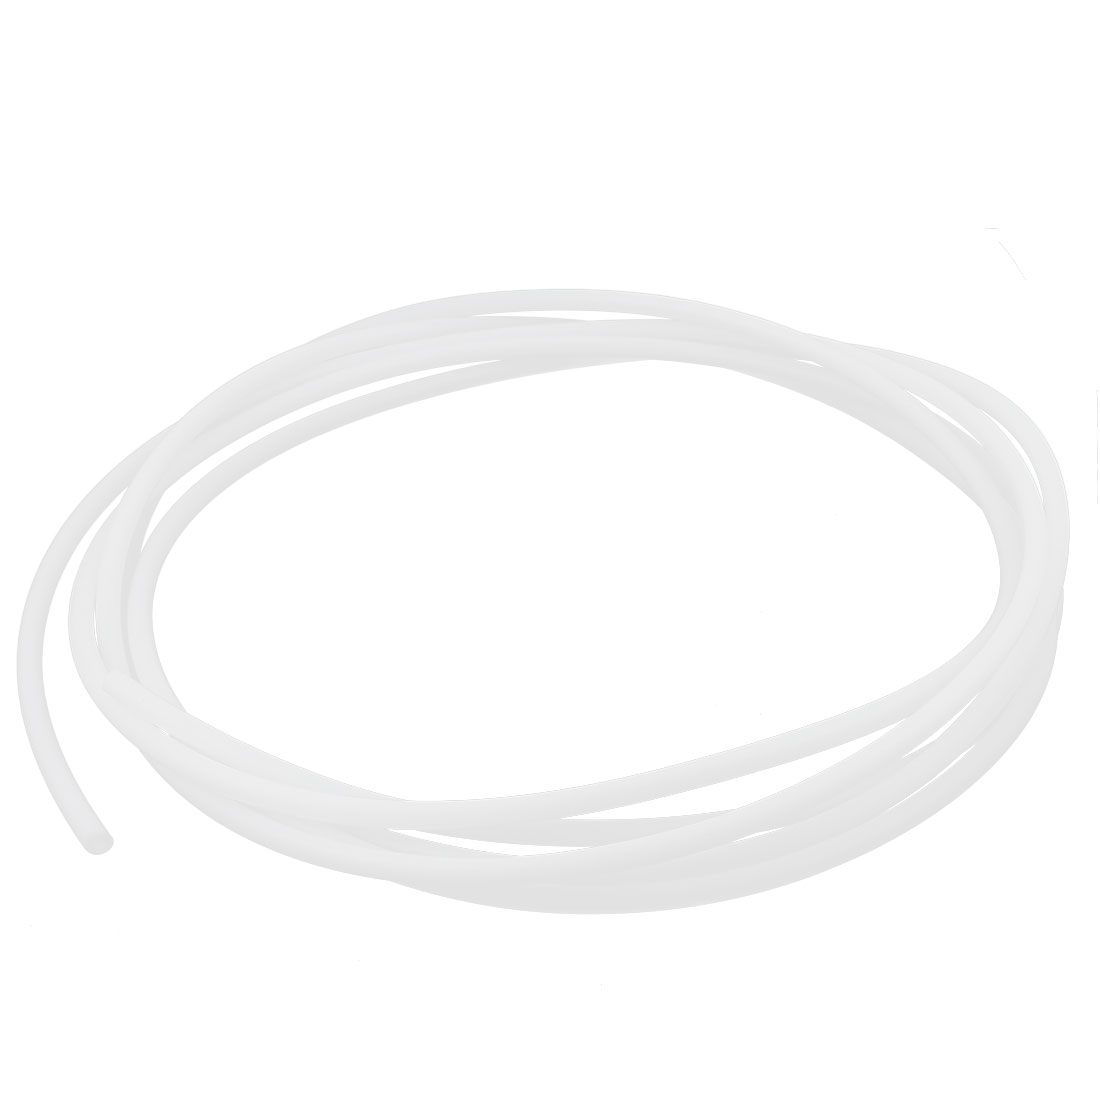 5M Length 7mm ID 9mm OD PTFE Tubing Tube Pipe for 3D Printer RepRap